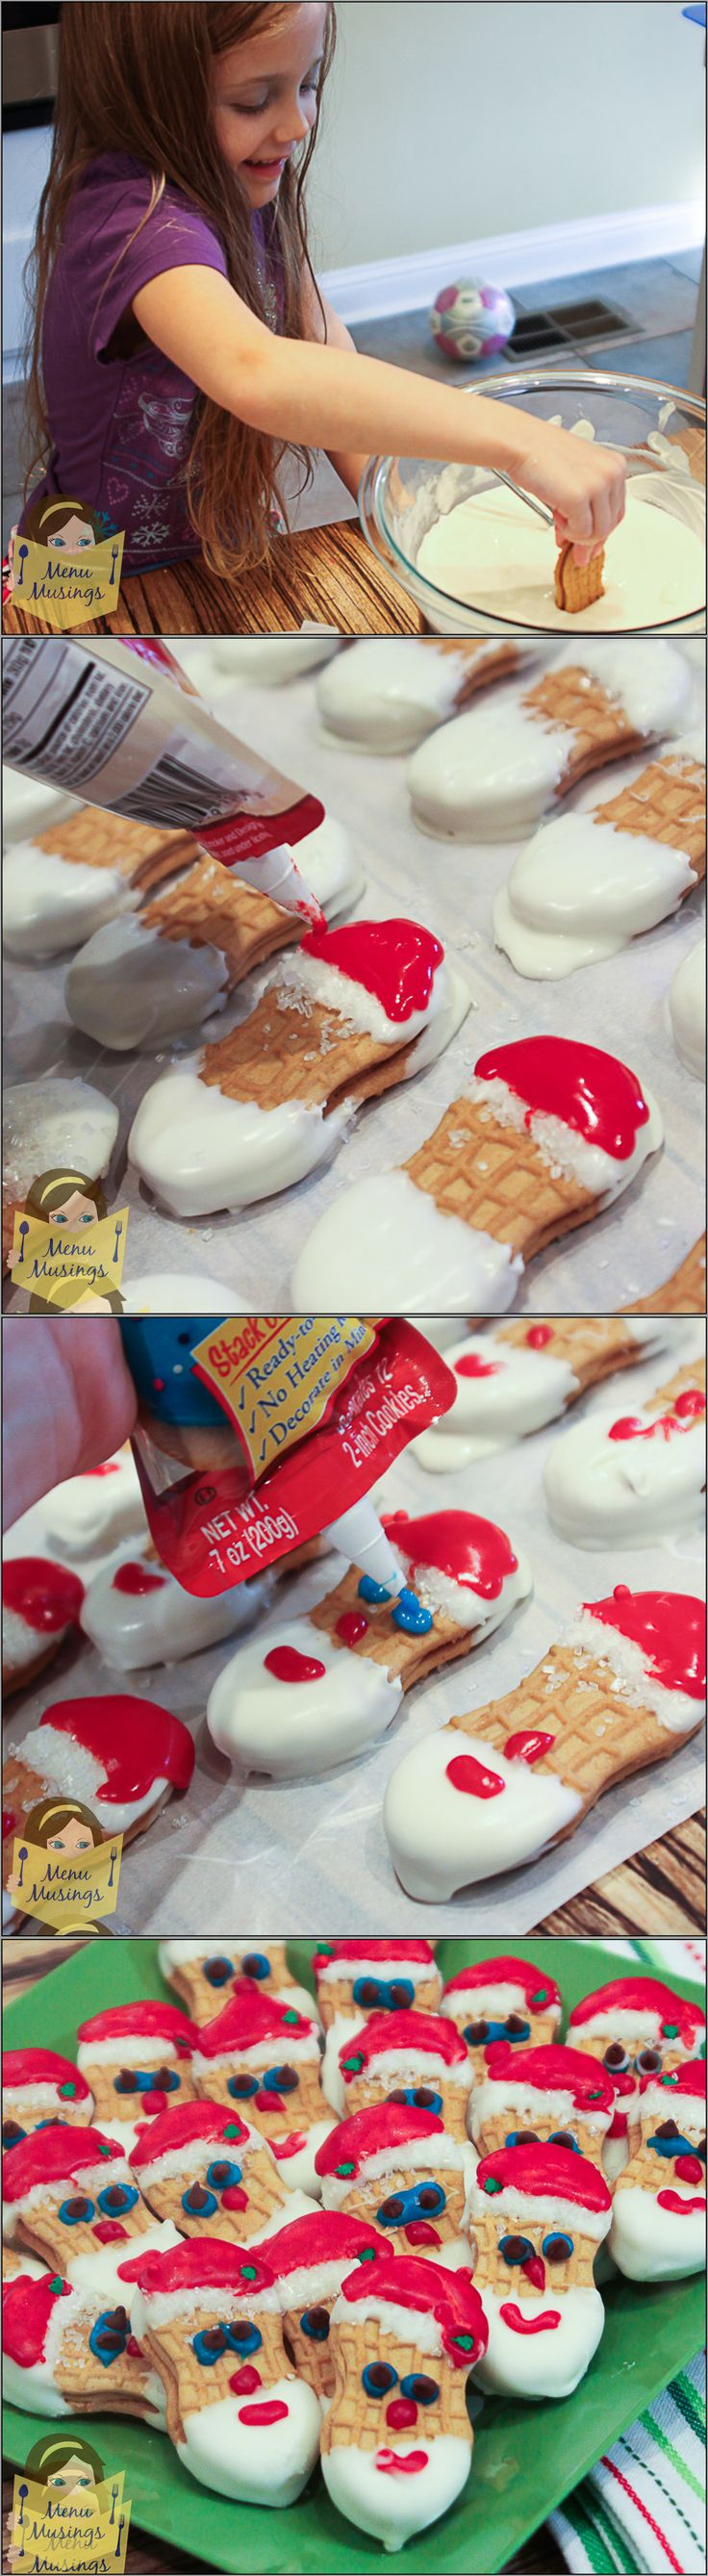 Nutter Butter Santa Cookies - a step-by-step photo tutorial to making these adorable, no-bake Santa Cookies with your kids. <3